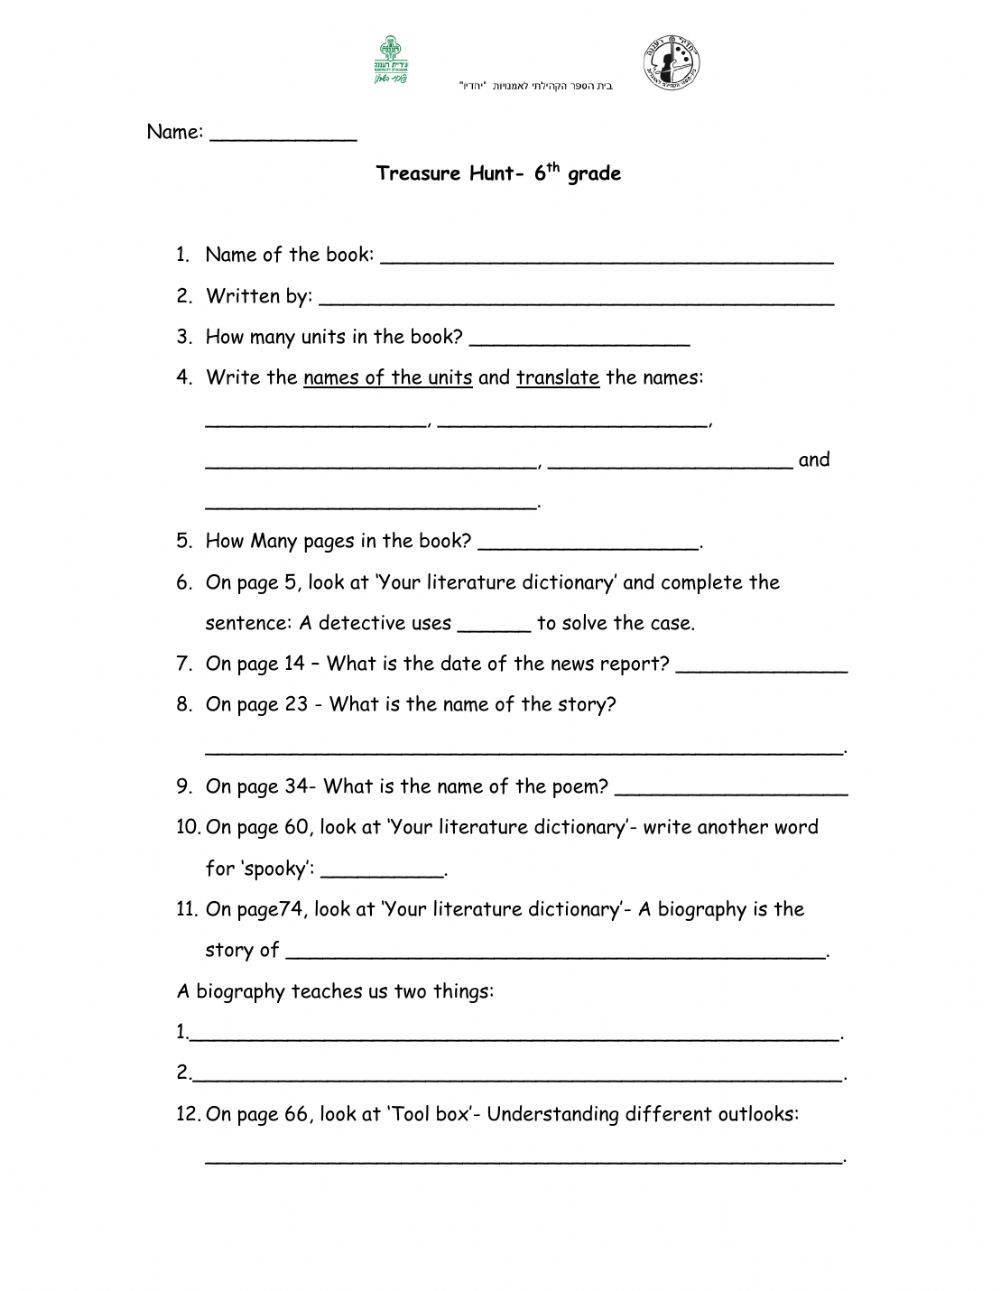 medium resolution of Treasure Hunt- 6th grade worksheet